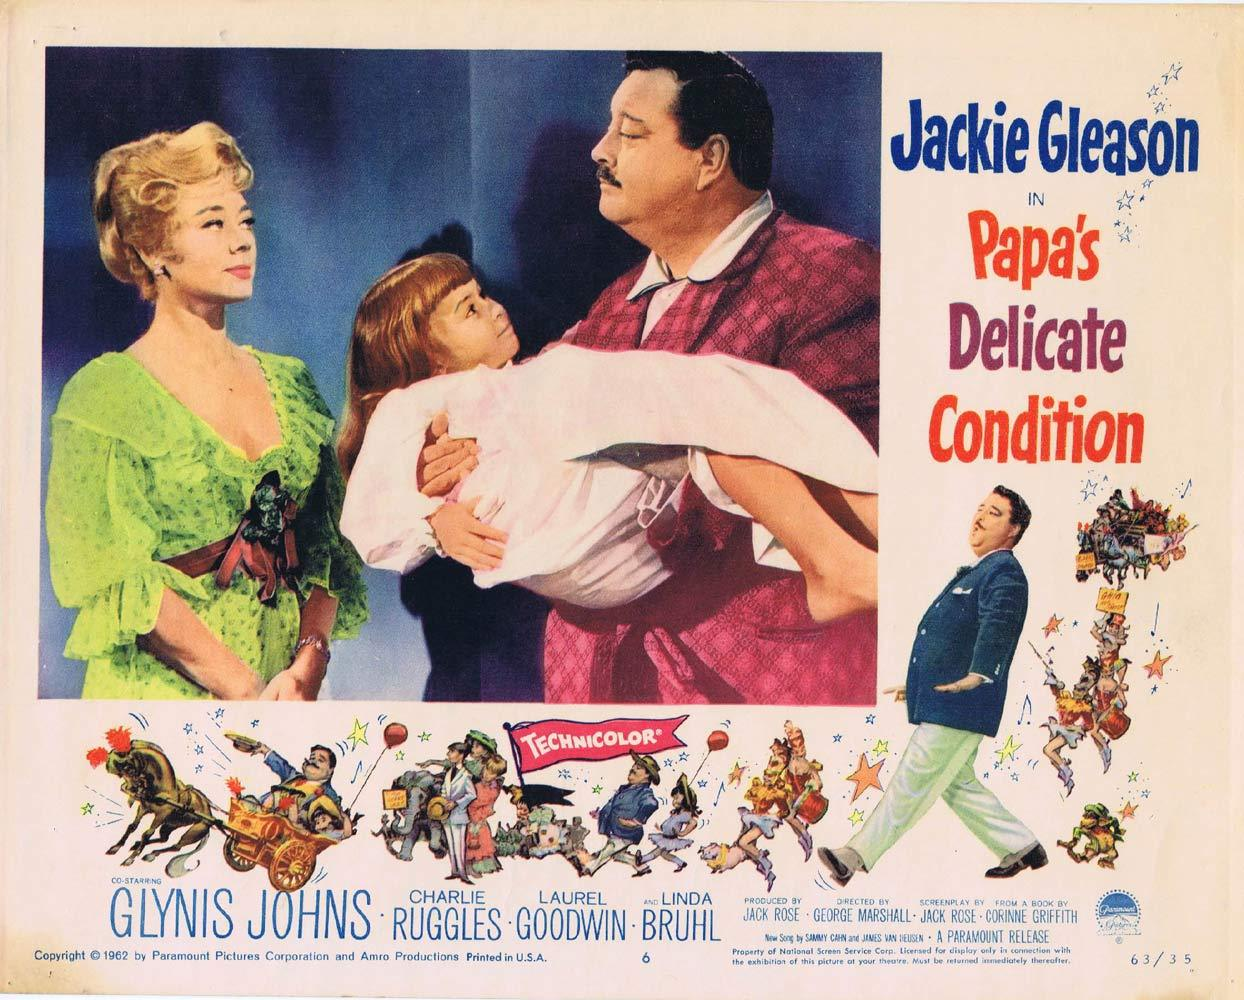 PAPAS DELICATE CONDITION Lobby Card 6 Jackie Gleason Glynis Johns